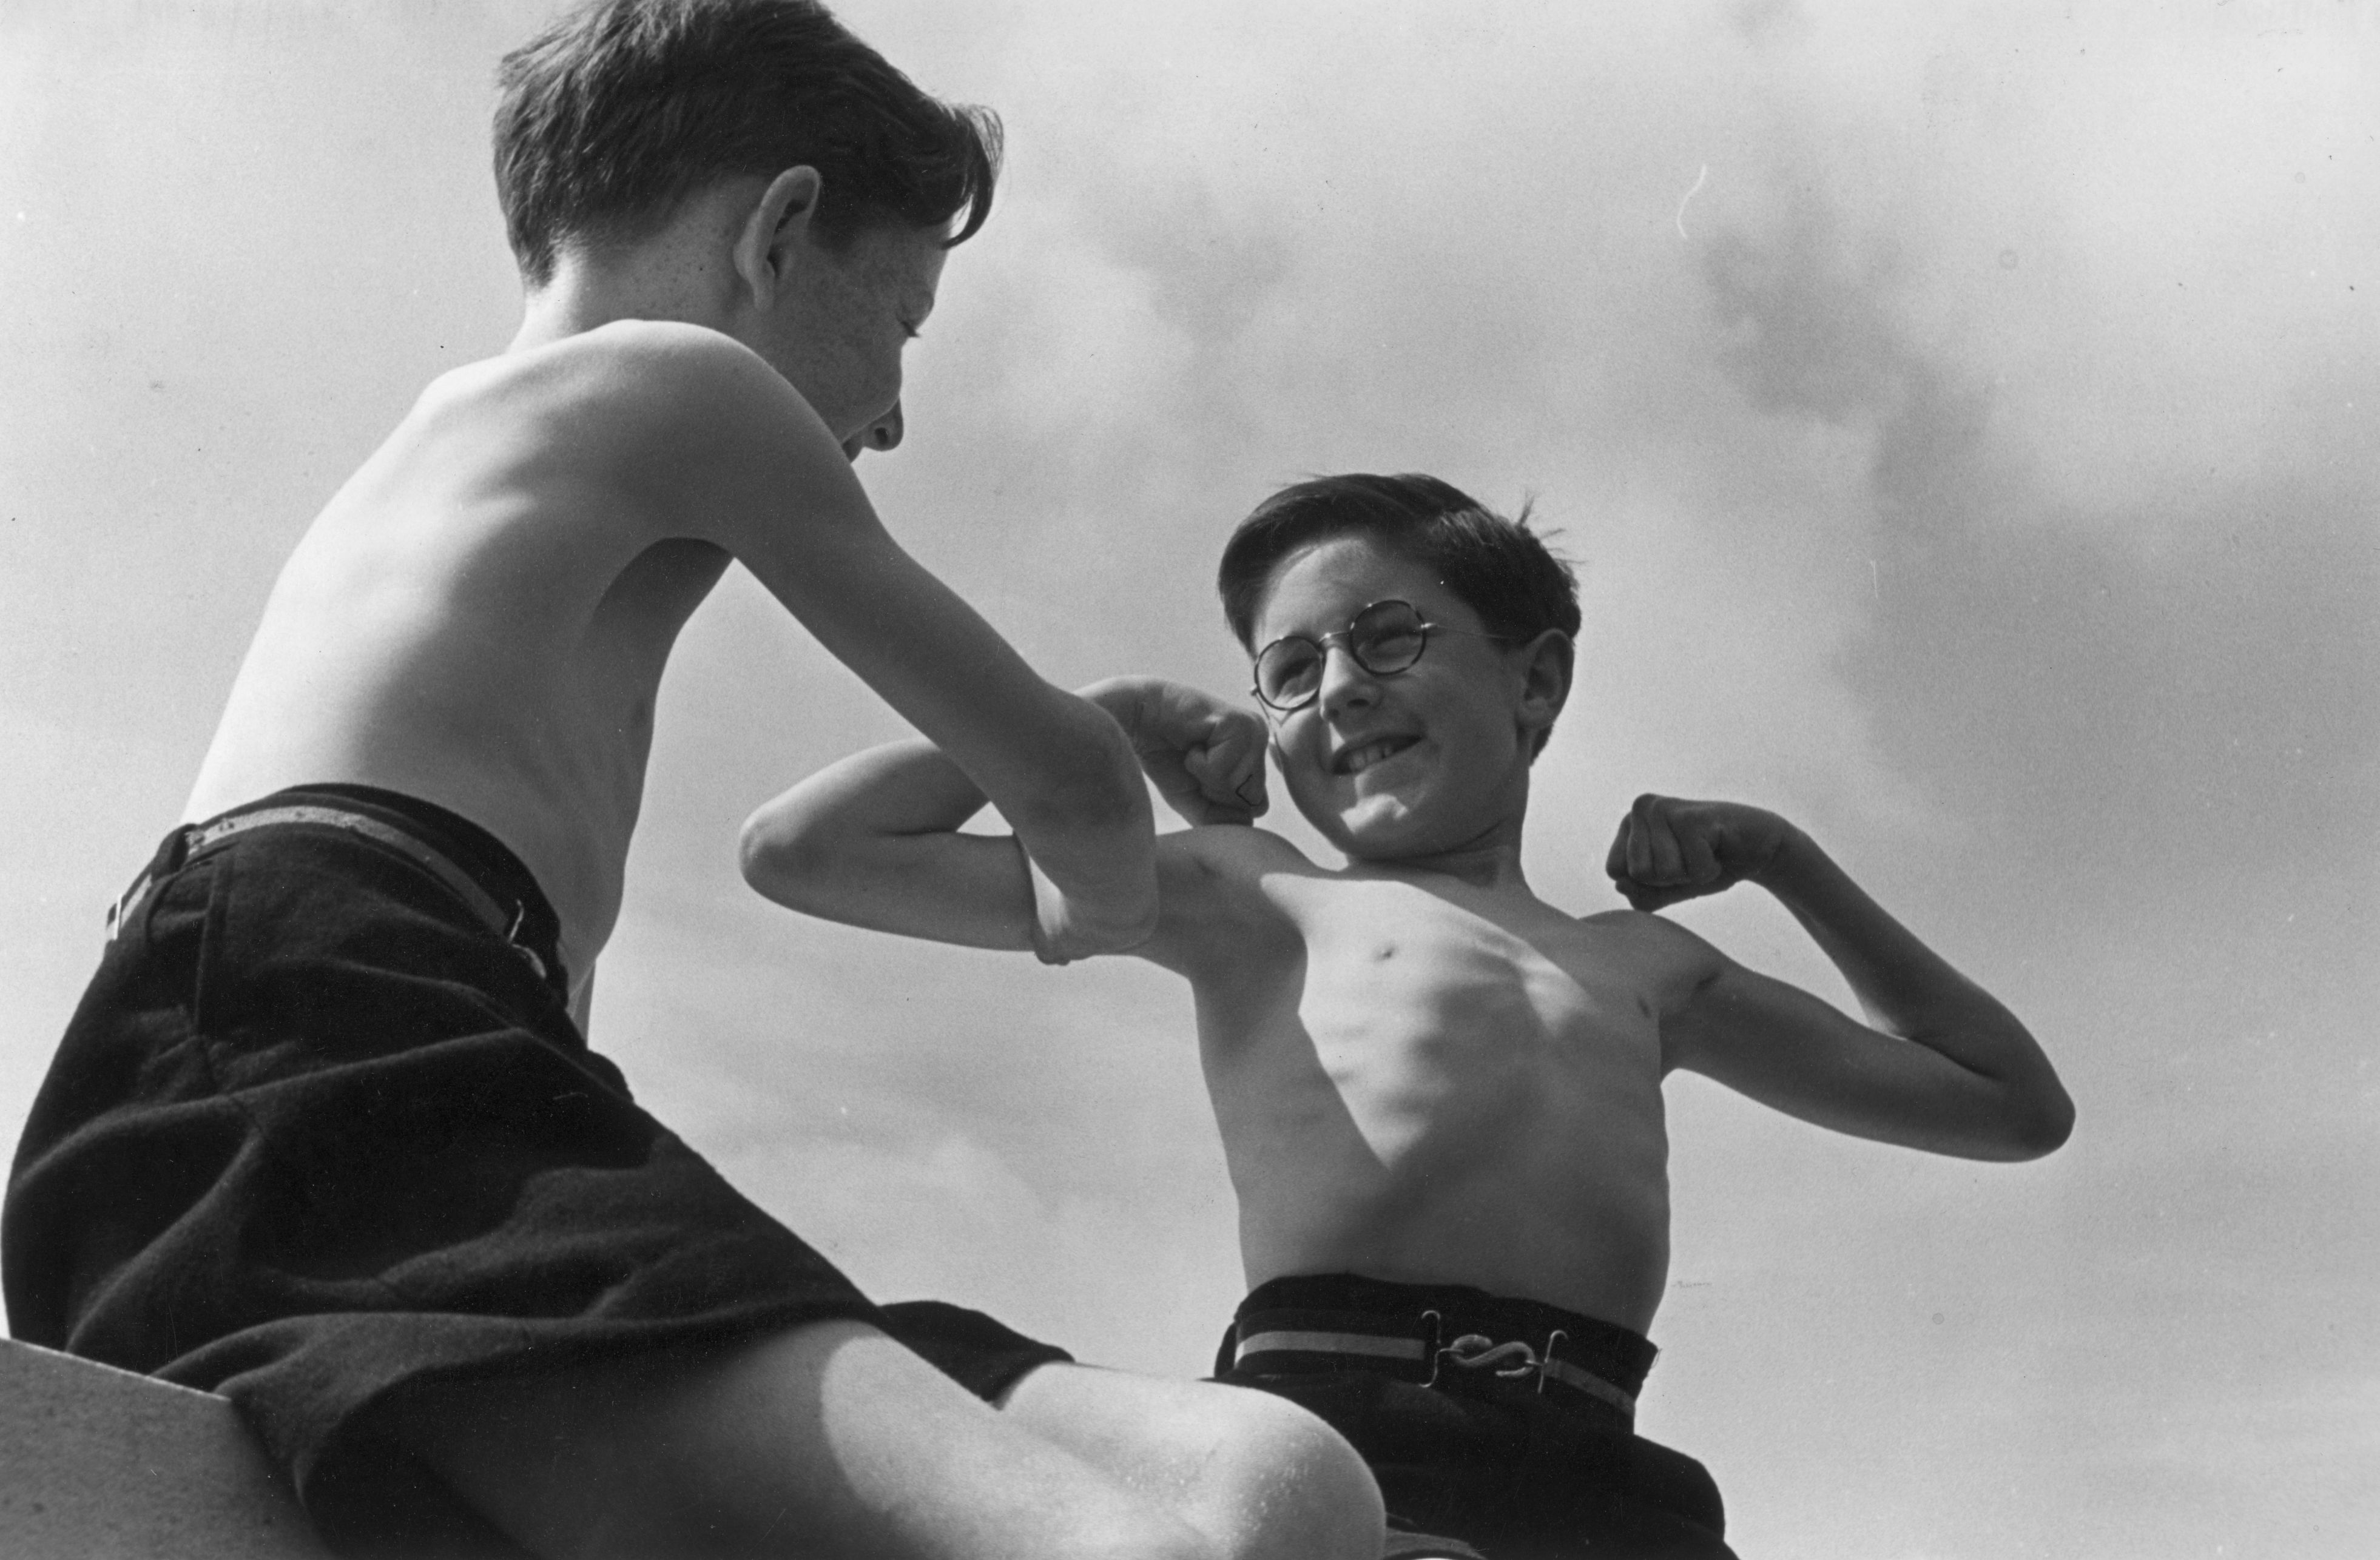 Two boys comparing their arm strength, and prepare for a life of muscle building workouts